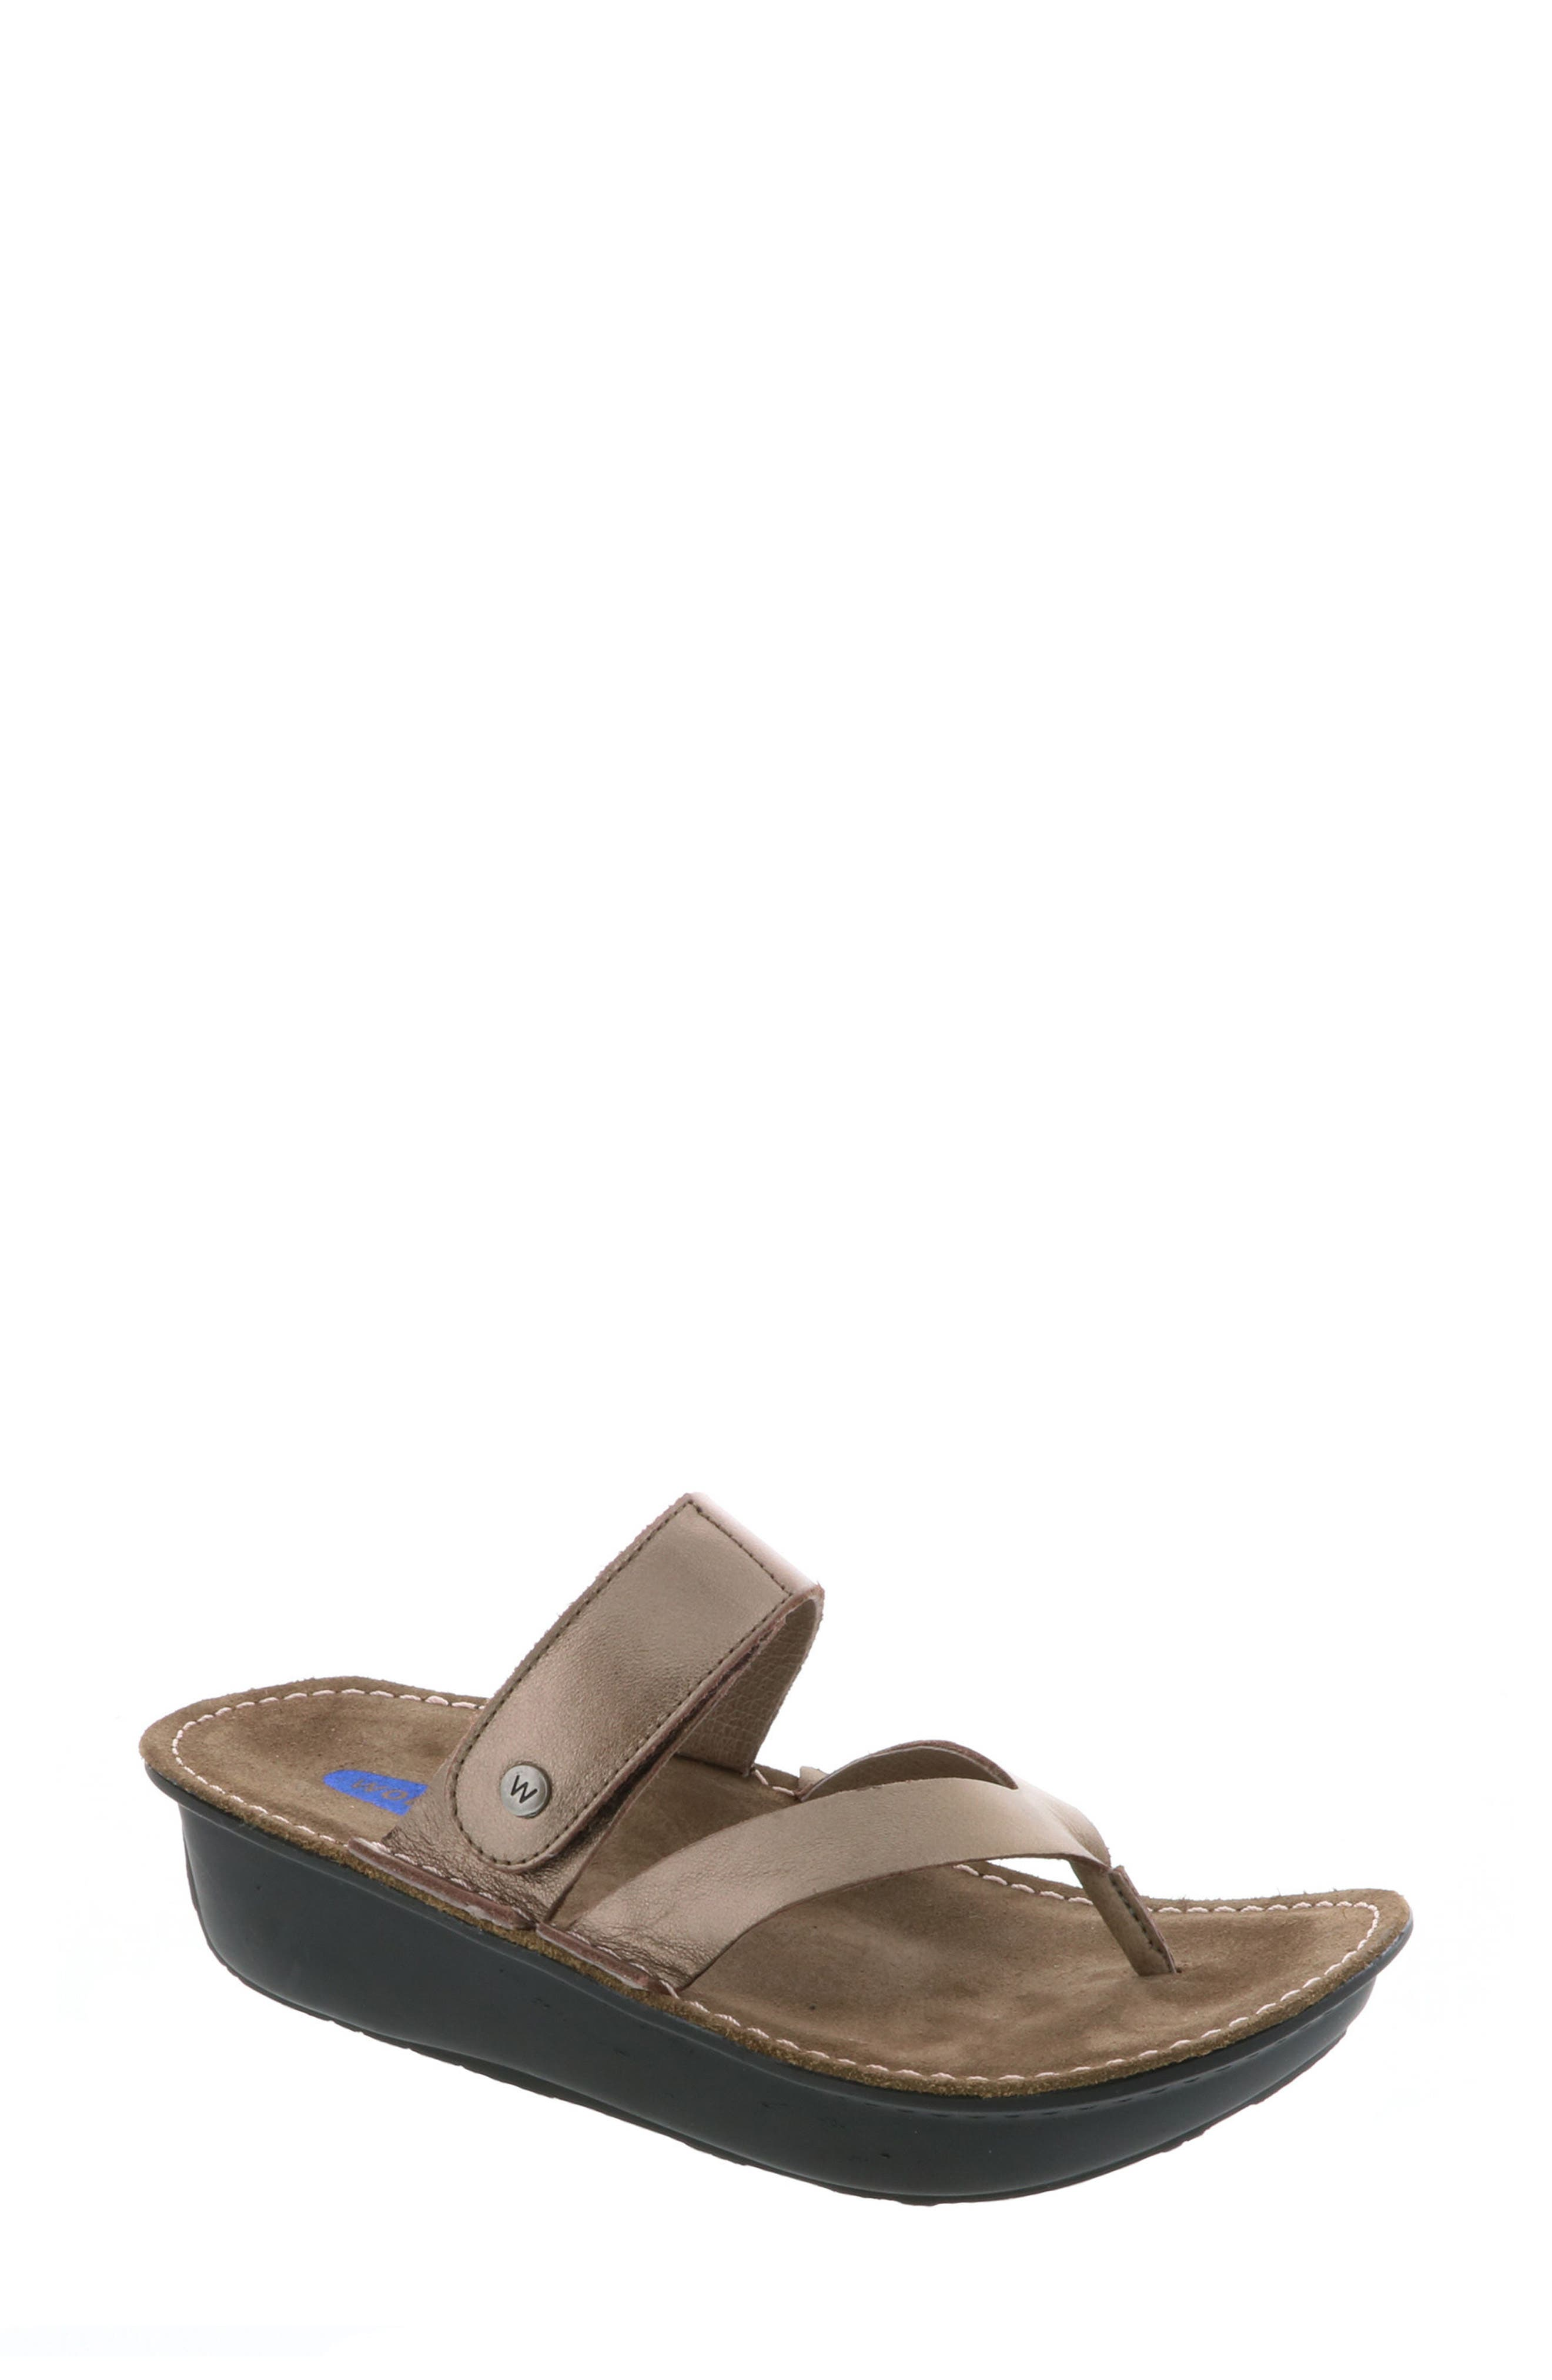 Tahiti Platform Sandal,                         Main,                         color, BRONZE METALLIC